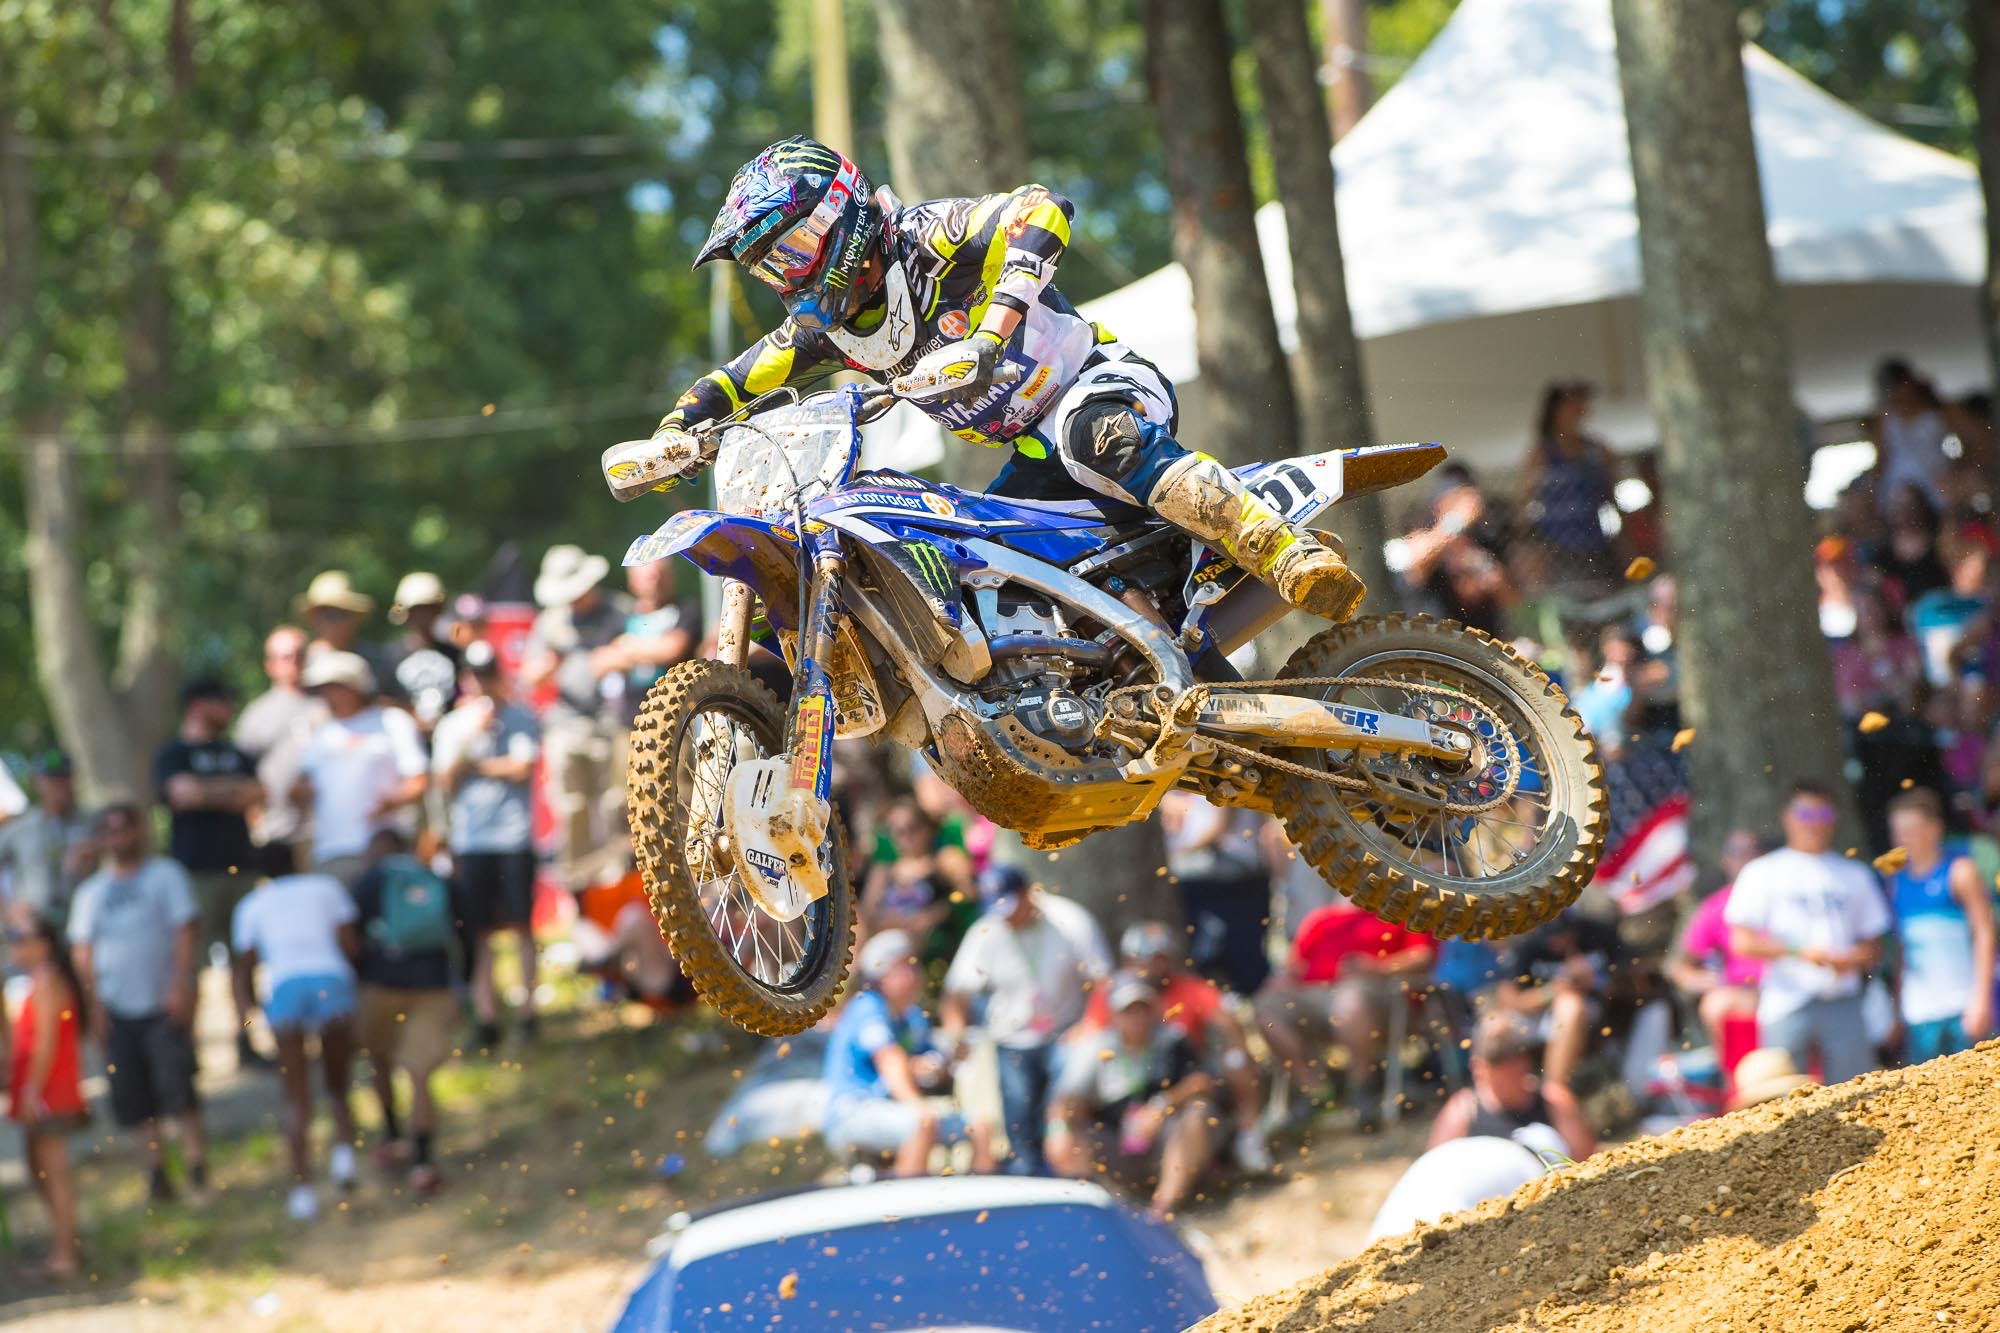 Another solid day at Budds Creek for Justin Barcia.